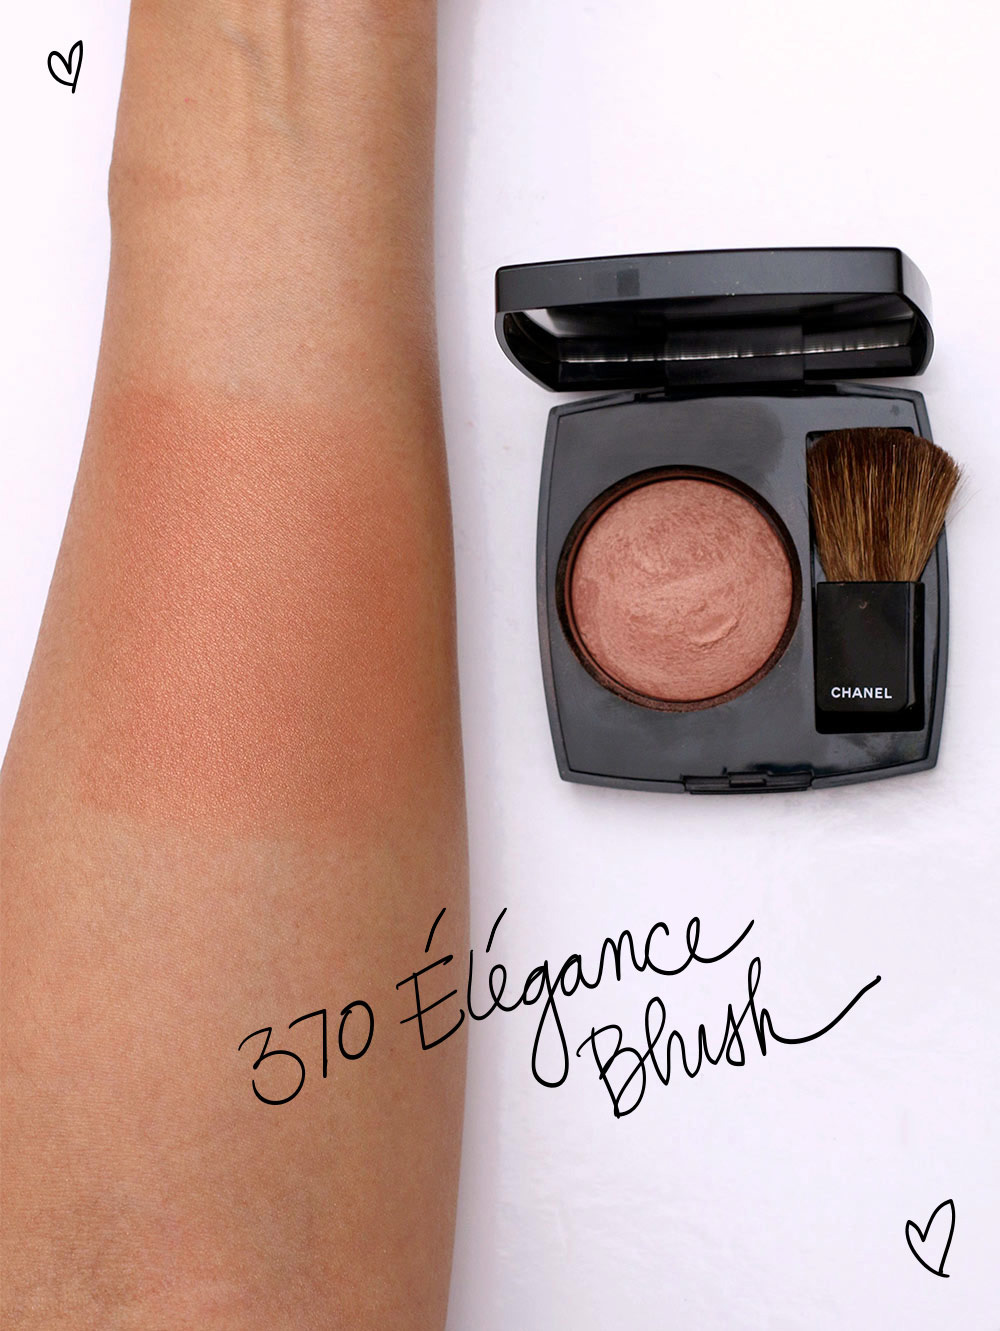 Chanel Élégance Blush